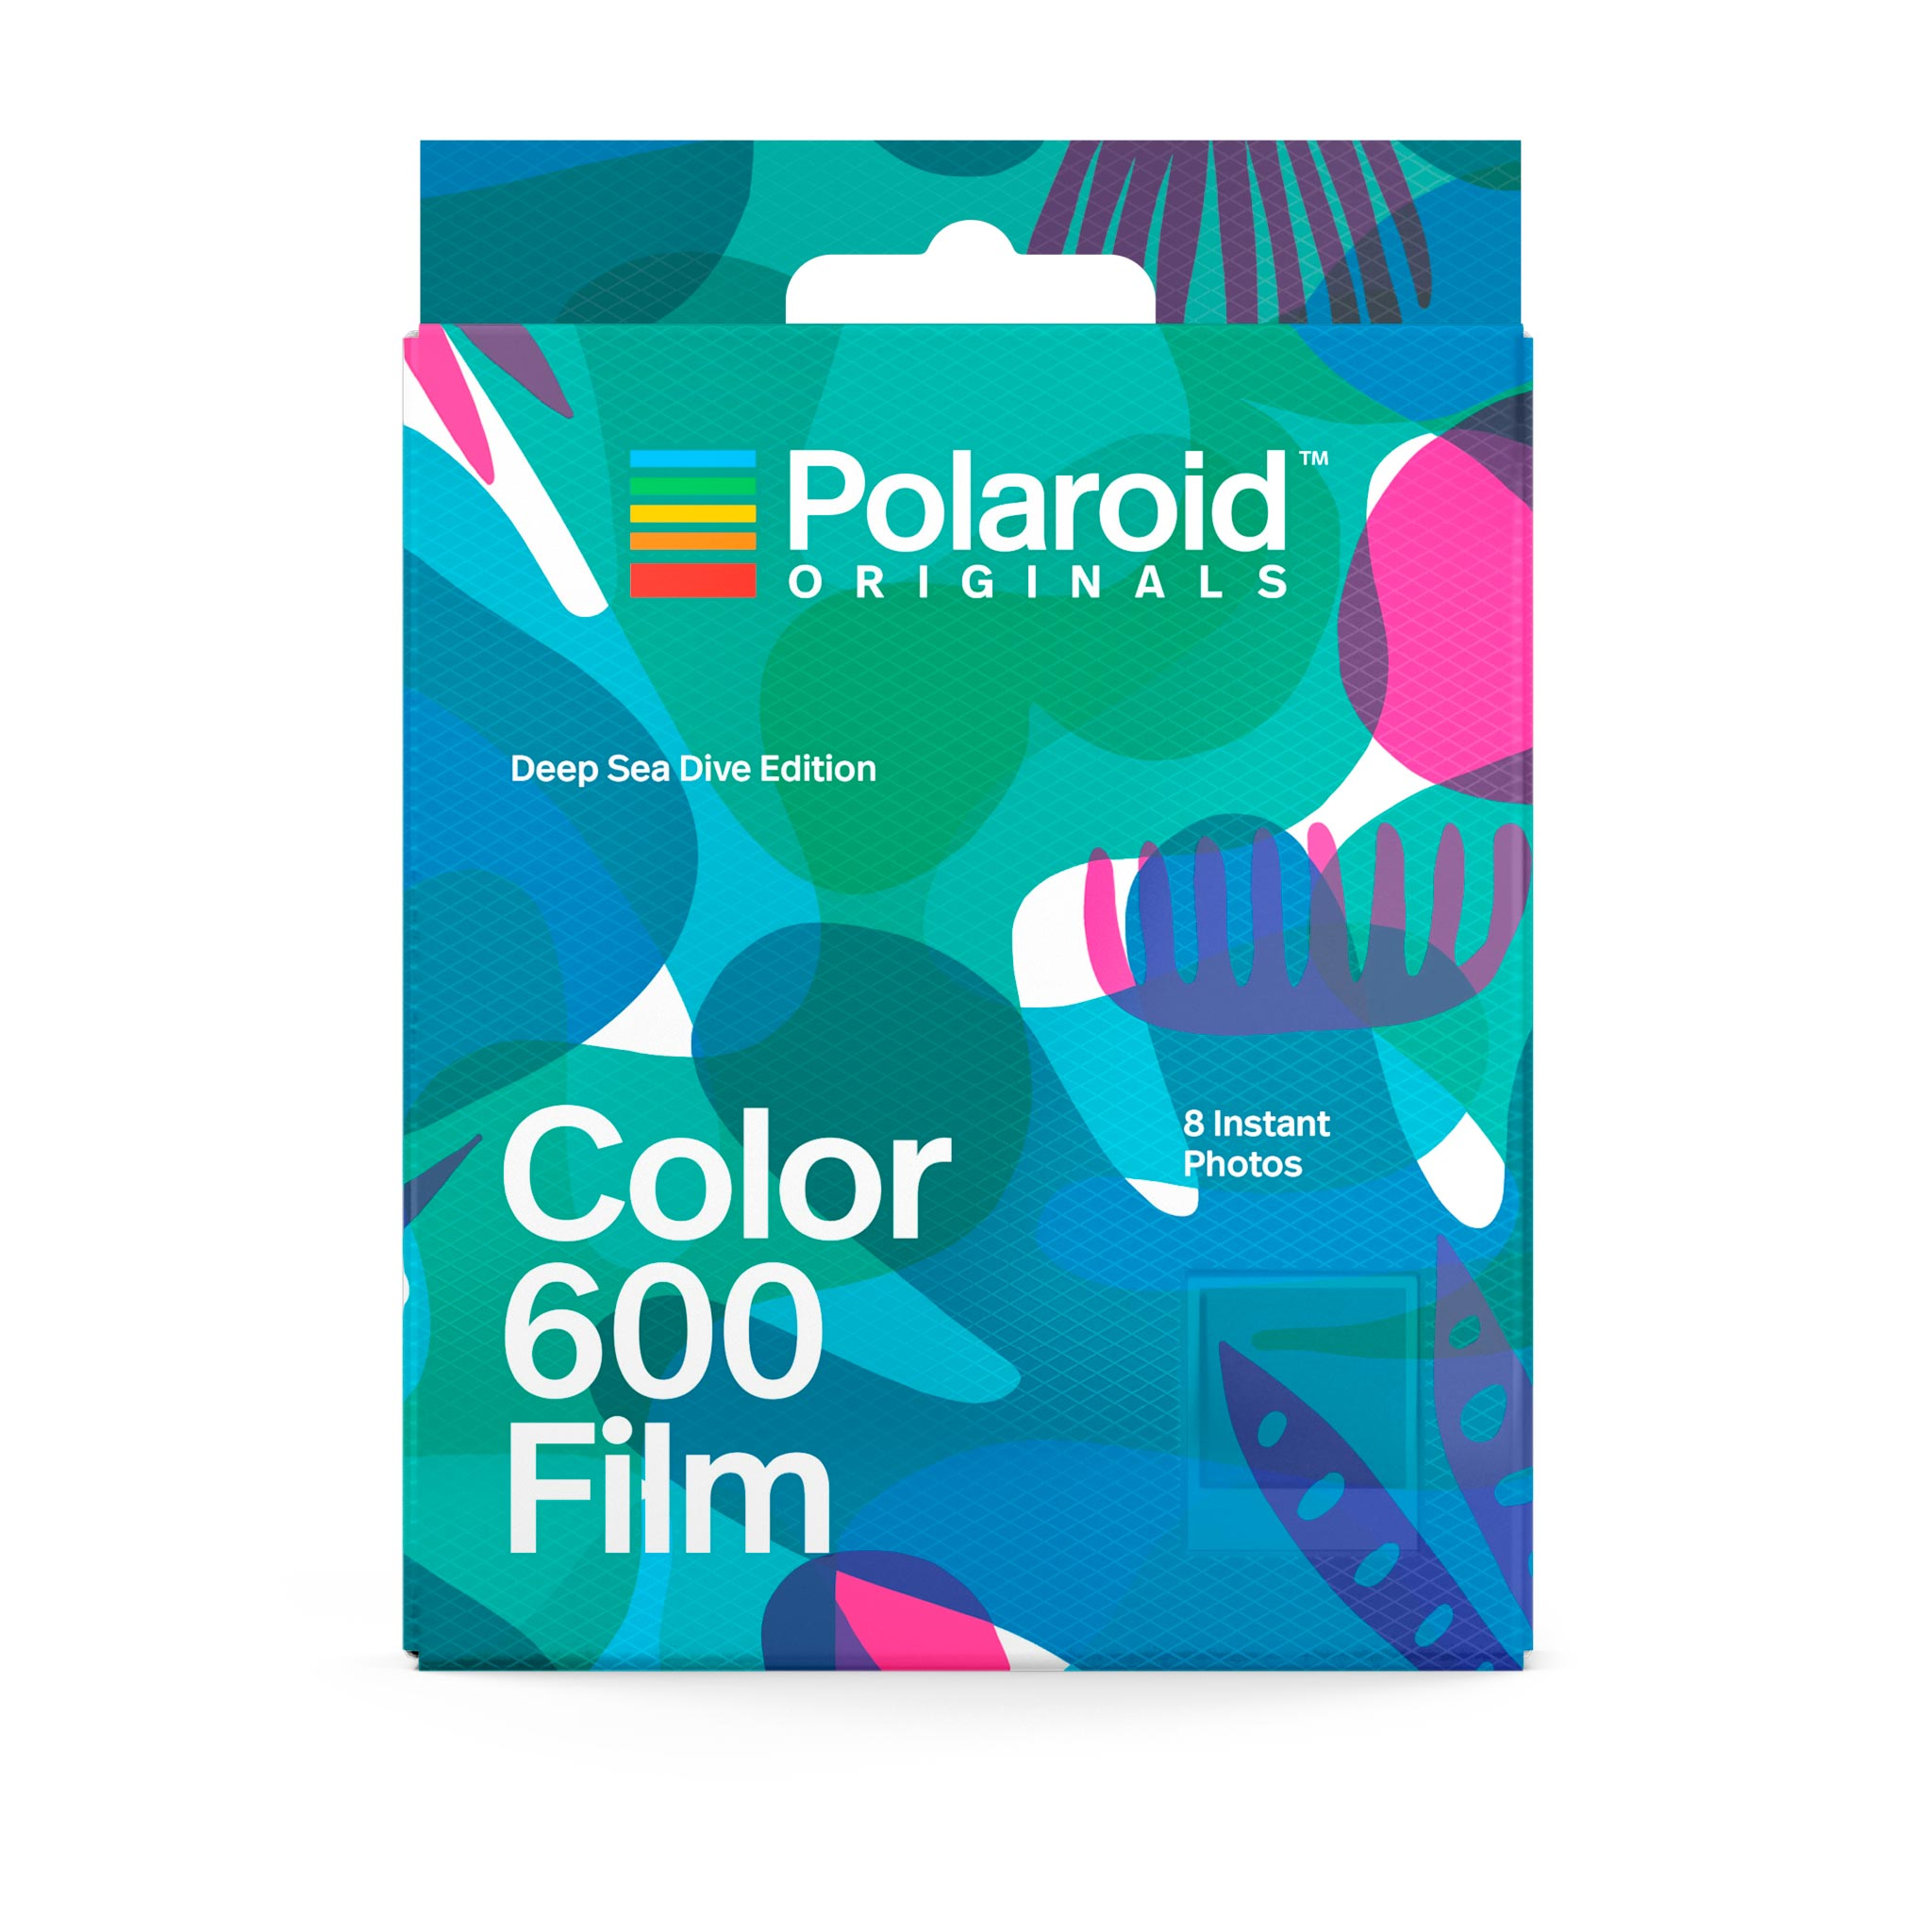 Color Film for 600 Deep Sea Dive Edition